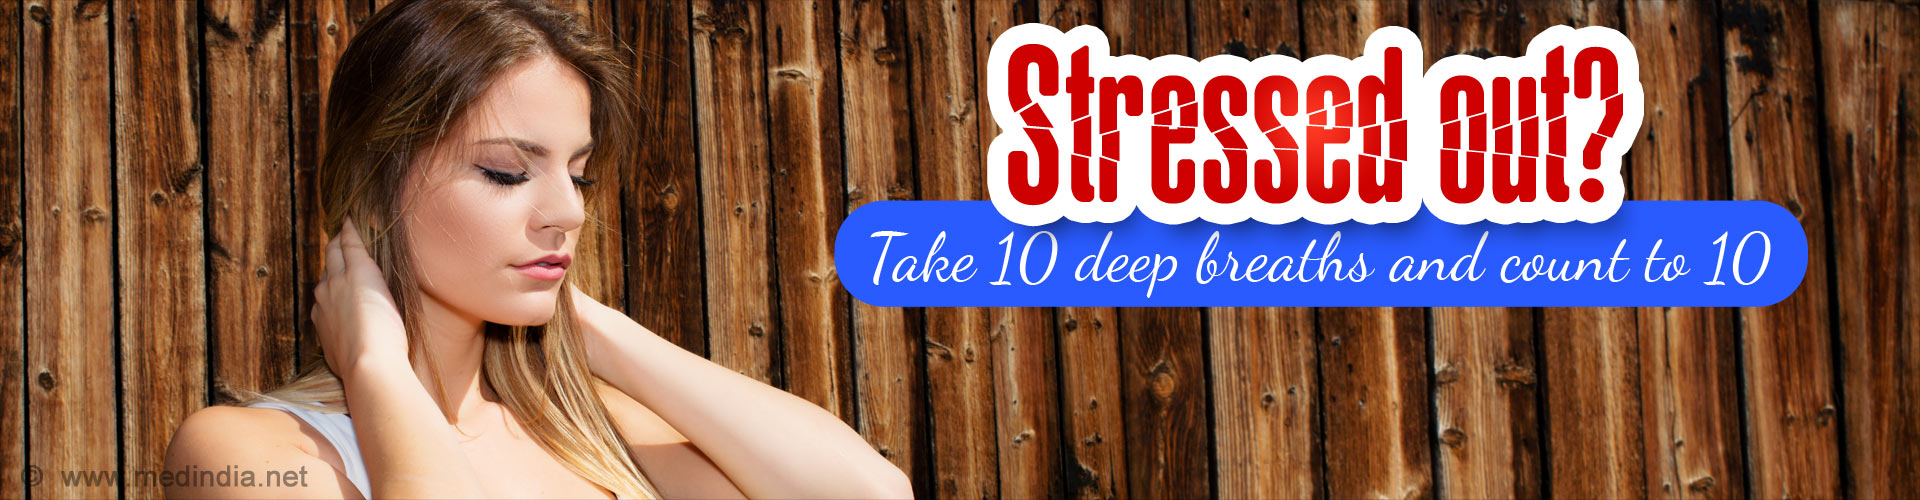 Stressed out? Take 10 deep breaths and count to 10.